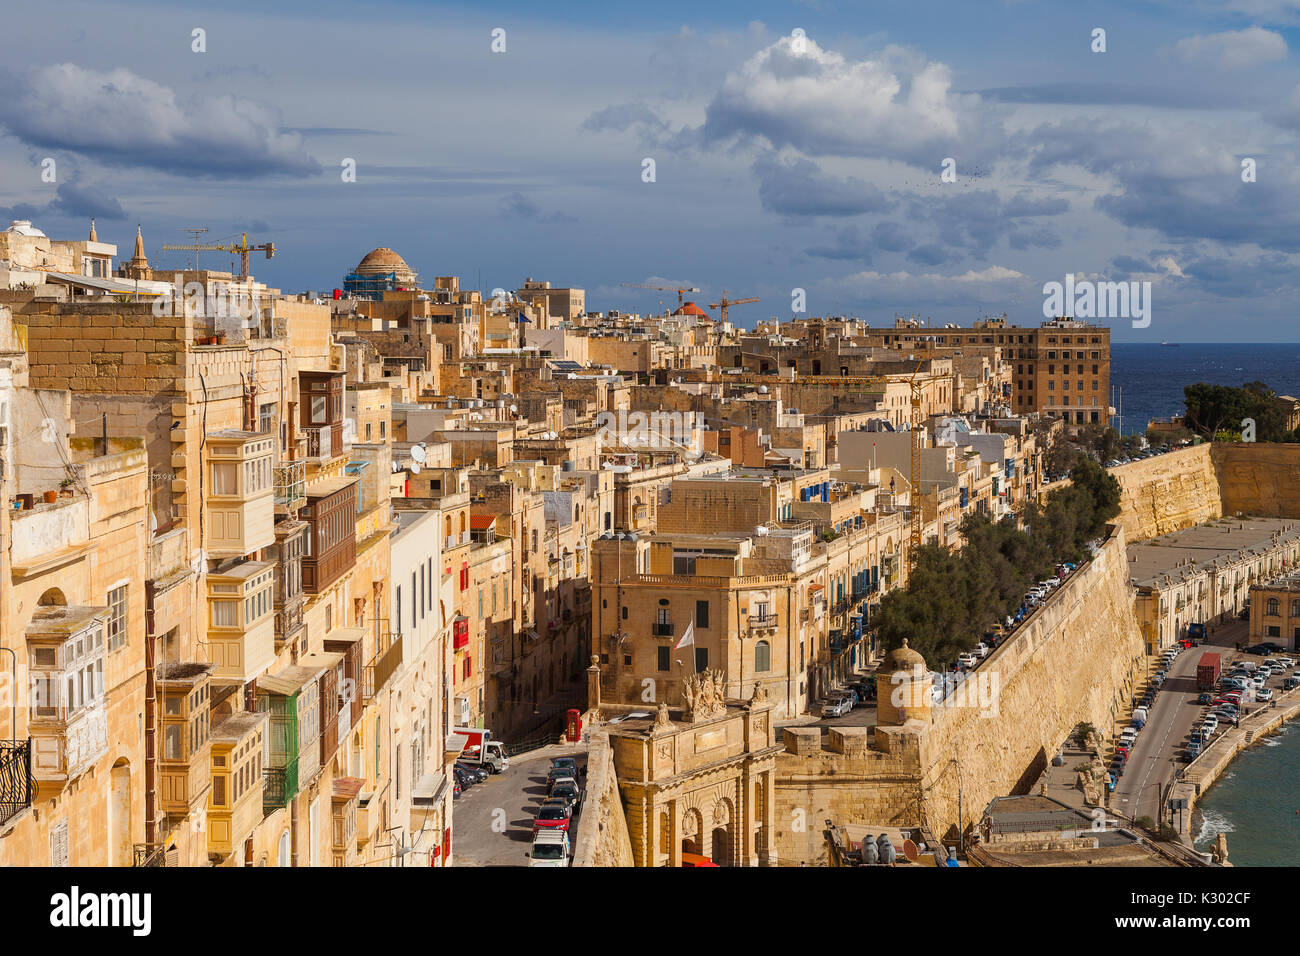 Malta - Aerial view of the ancient city Valletta on a sunny day with blue sky - Stock Image